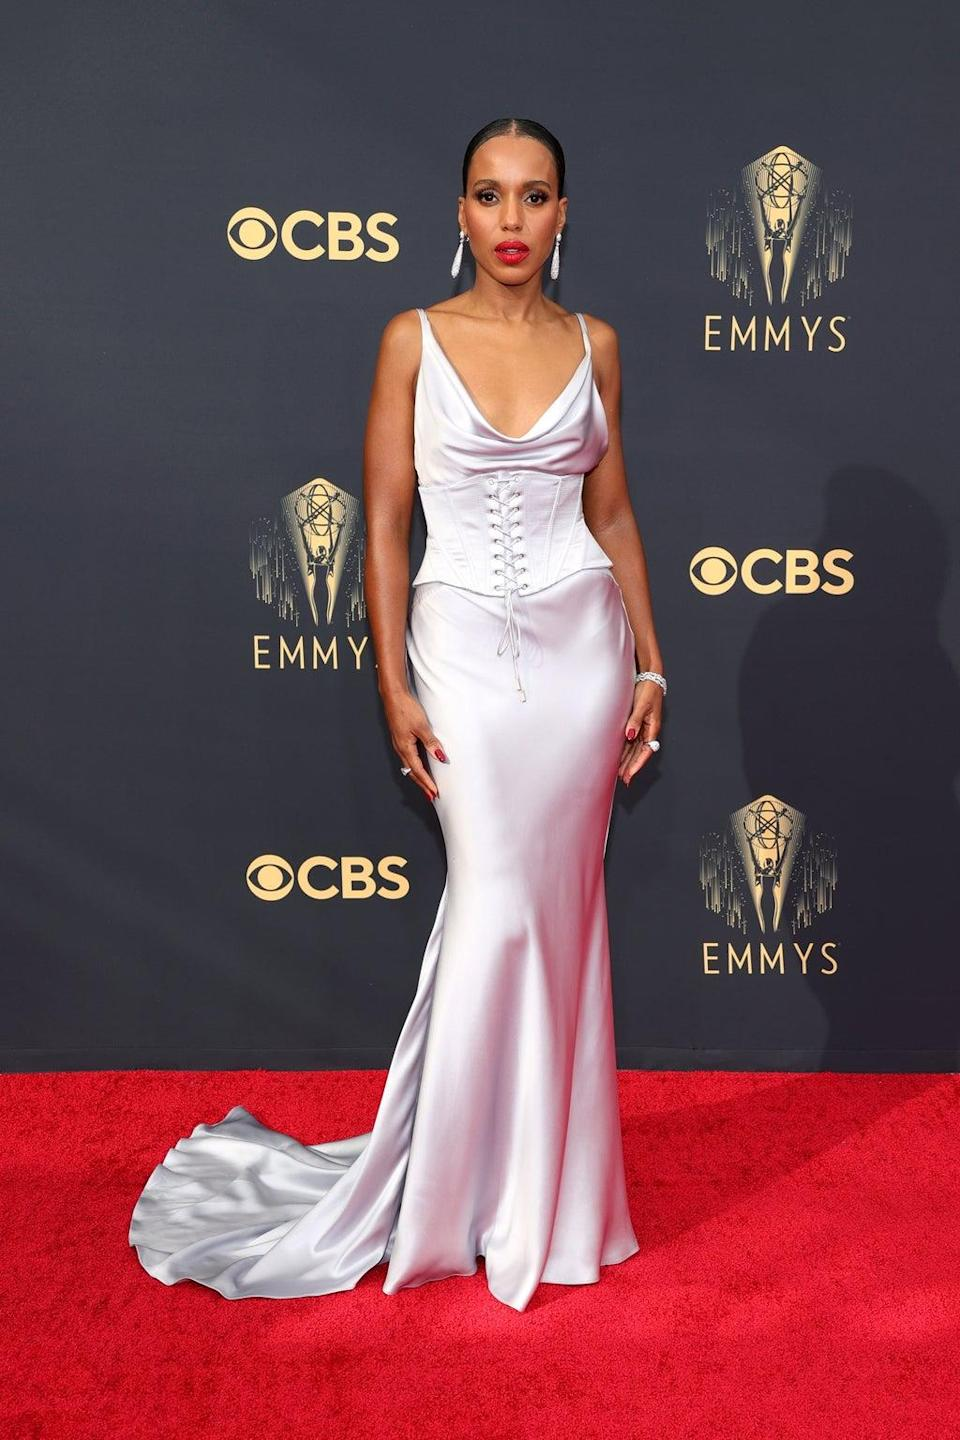 Kerry Washington at the 2021 Emmy Awards (Getty Images)